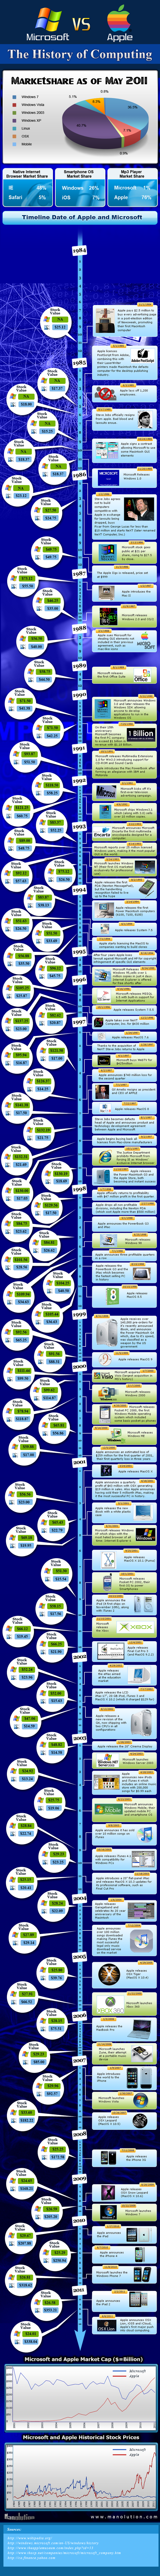 history-of-computing-full